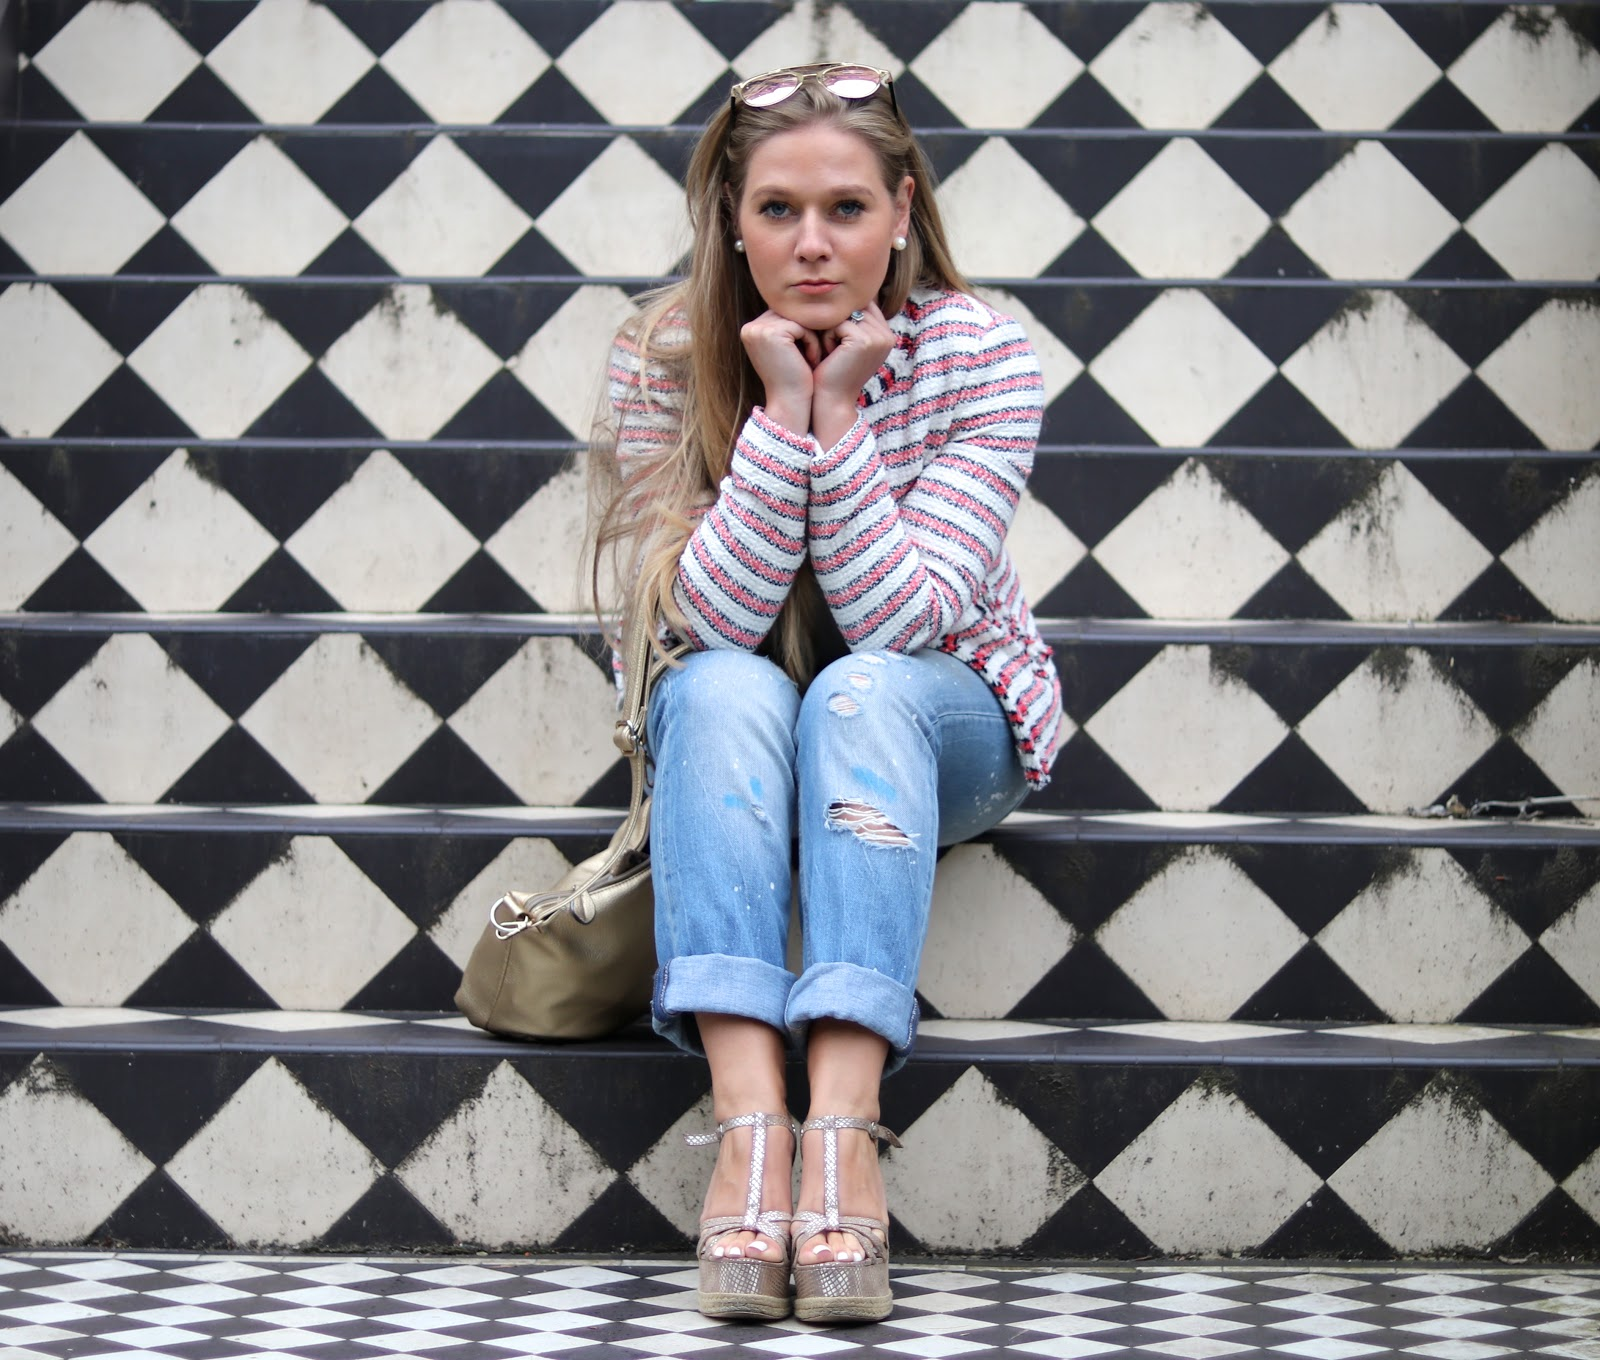 Blonde Girl, Katie Heath wearing L.K.Bennett Tweed Jacket, Jacques Vert white top, Paint splattered jeans, Gold wedges and reflective sunglasses in London for a smart/casual look